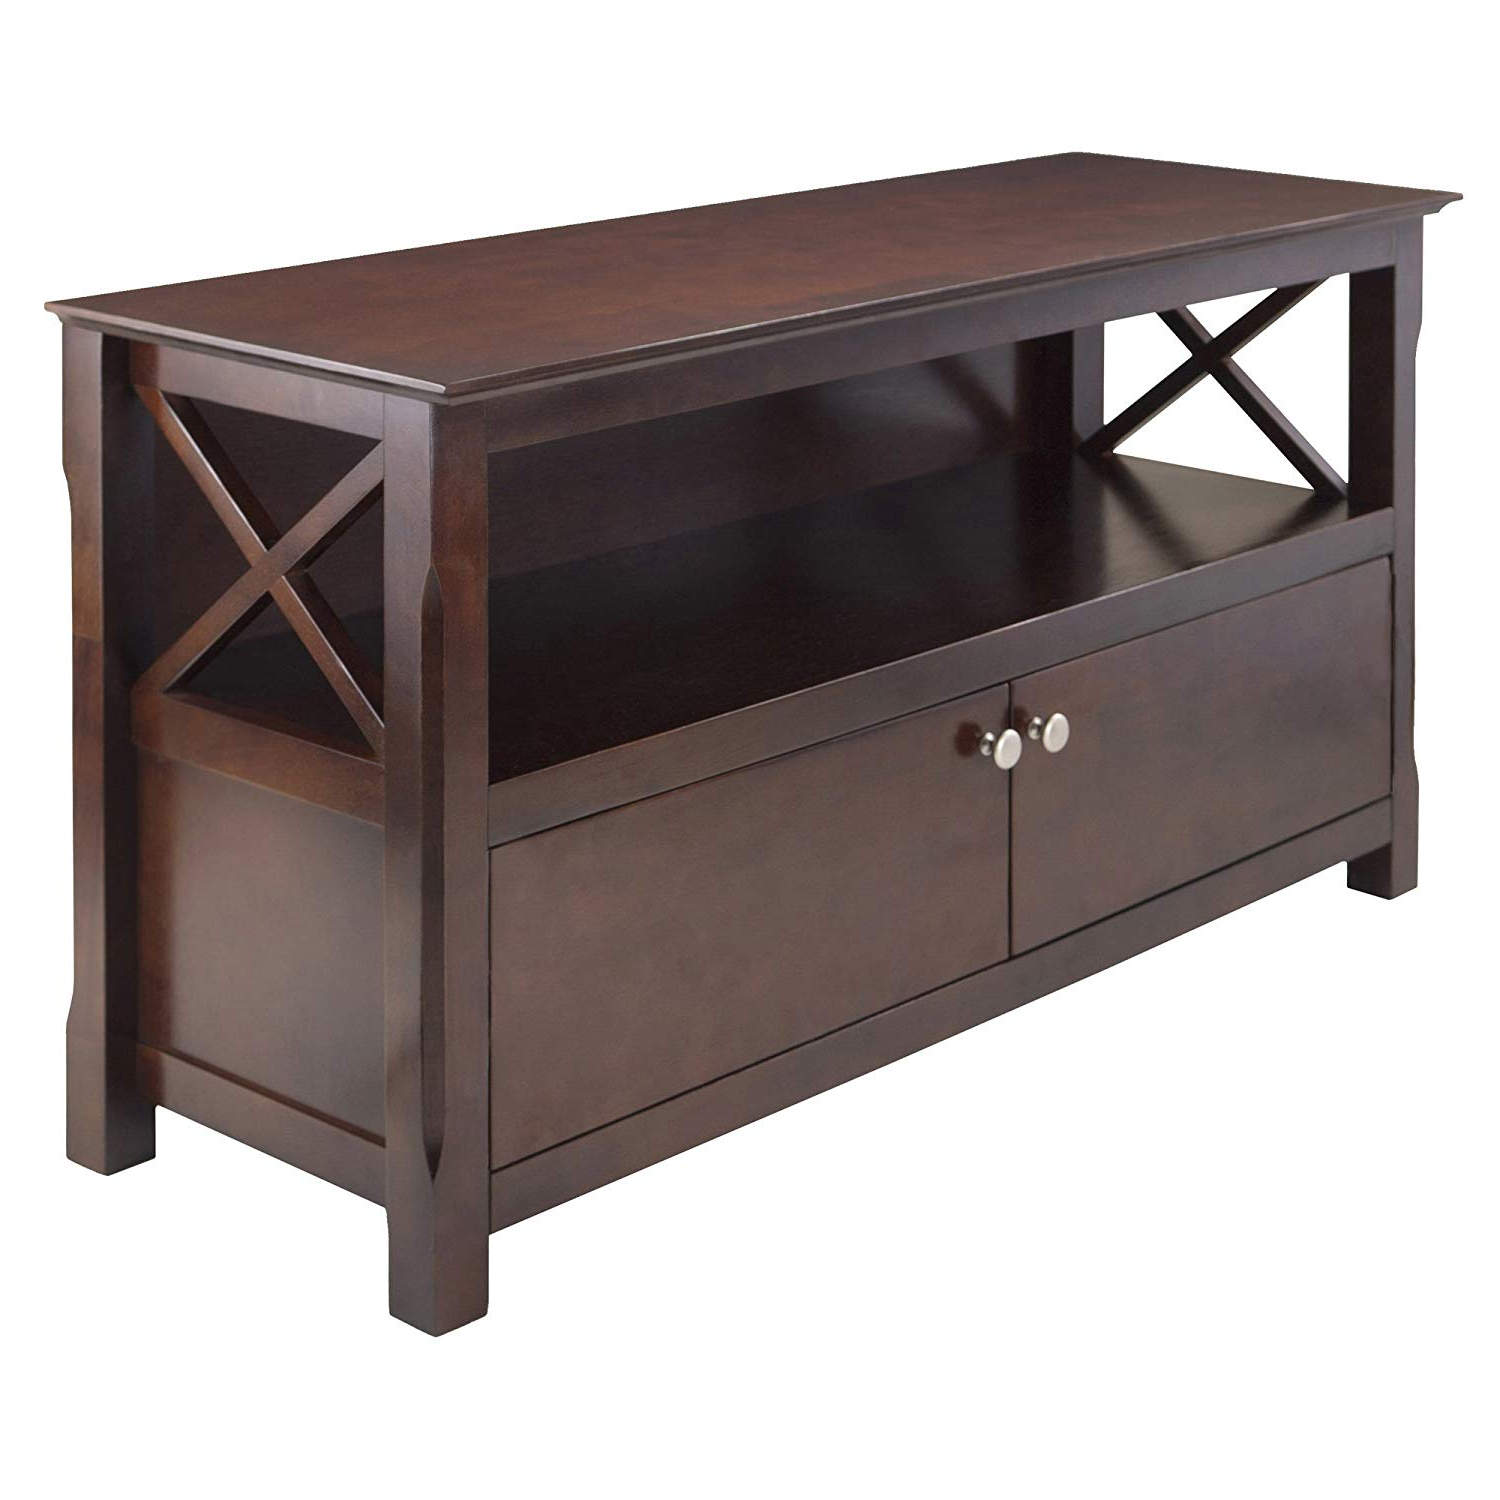 Amazon: Winsome Wood Xola Tv Stand: Kitchen & Dining Throughout Most Current Wooden Tv Stands With Doors (View 2 of 20)